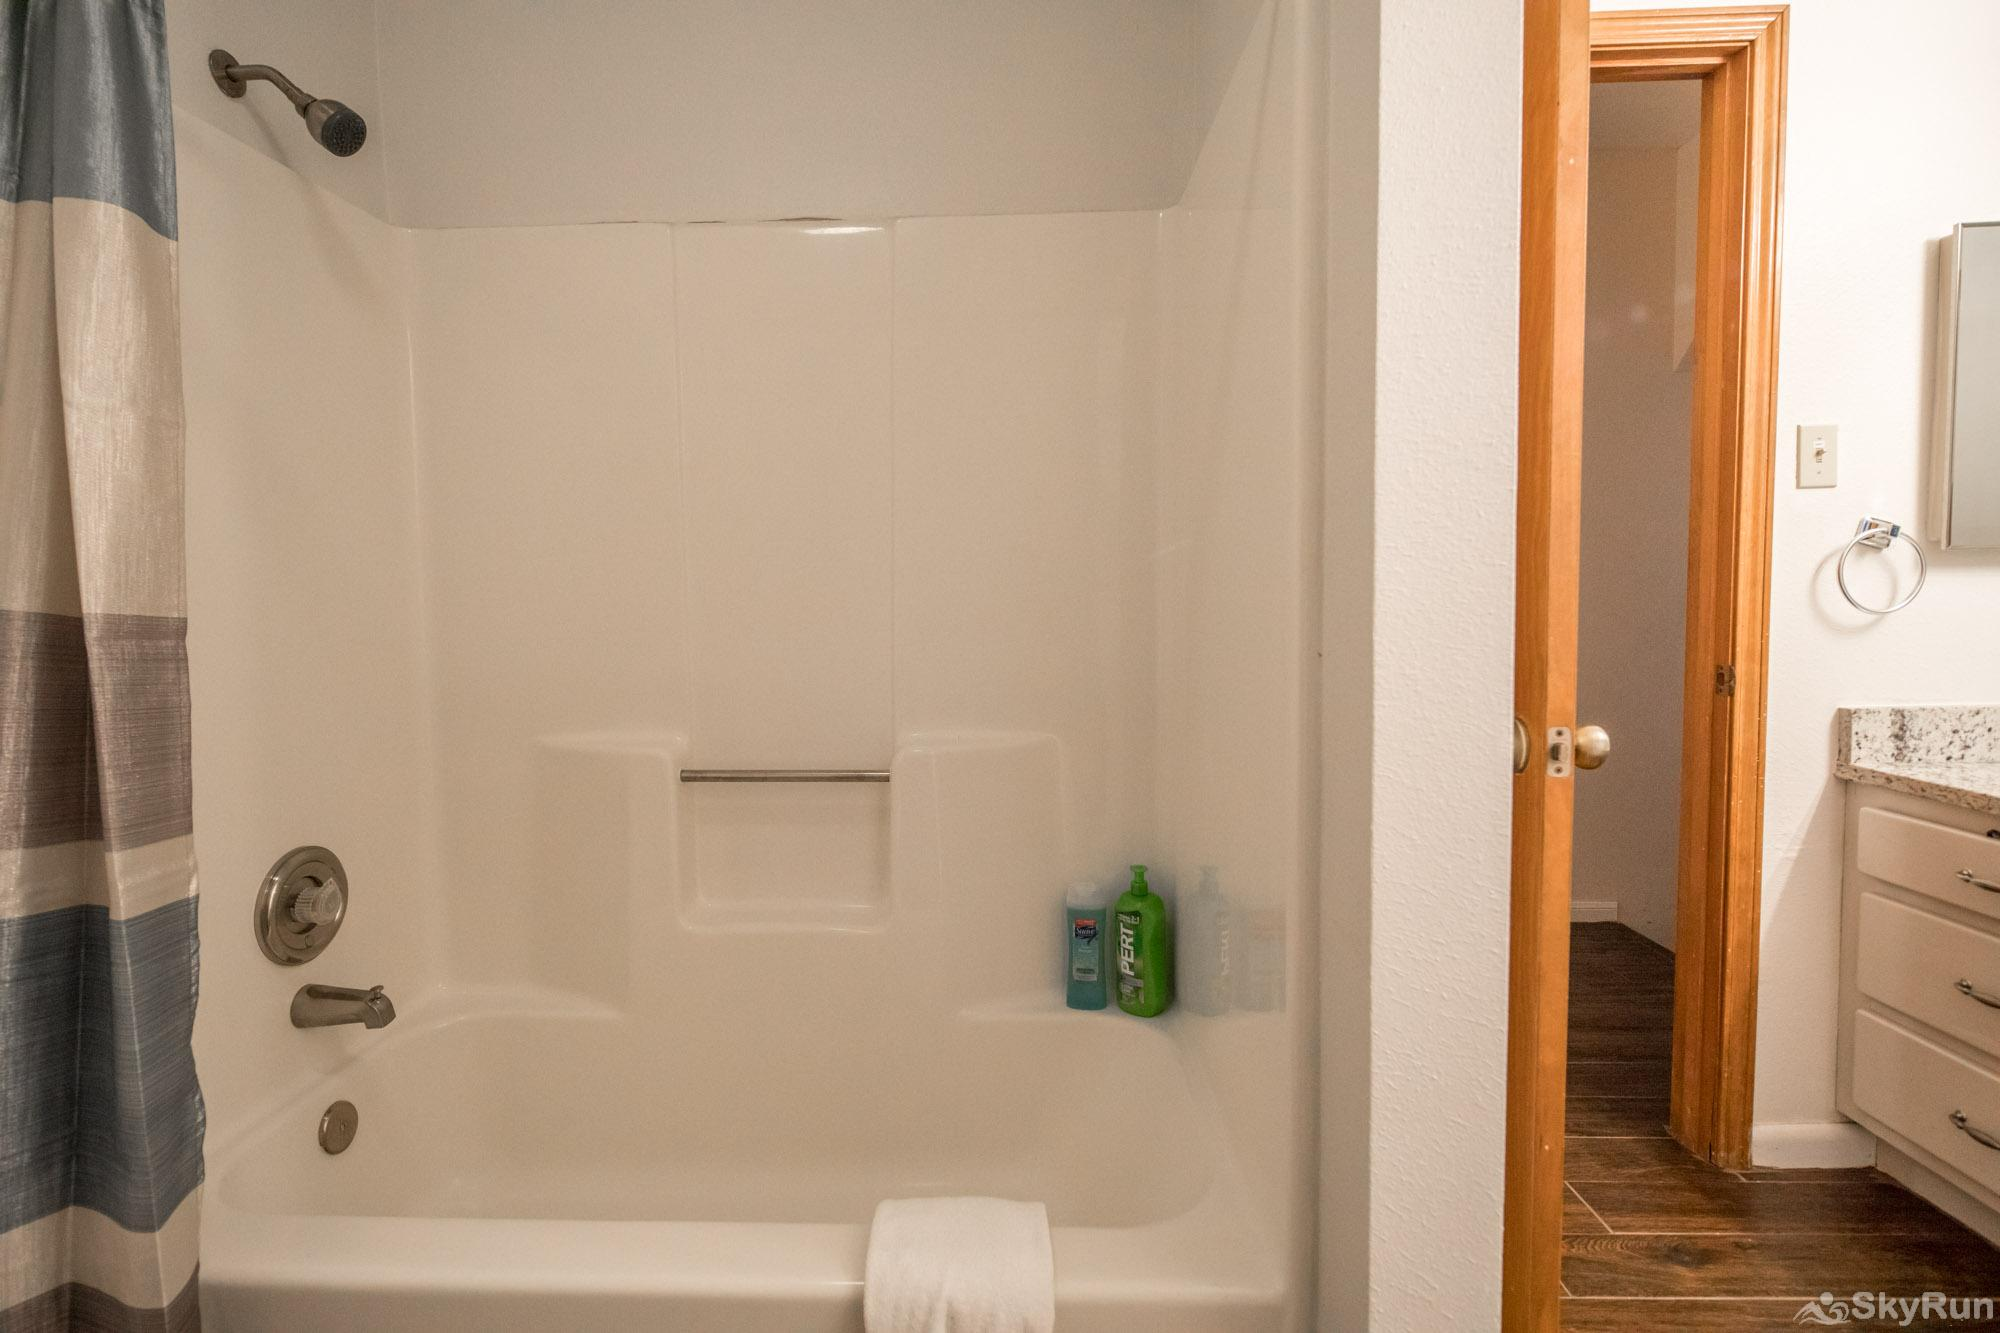 WATER'S EDGE RETREAT Shower/ tub combo in third bathroom